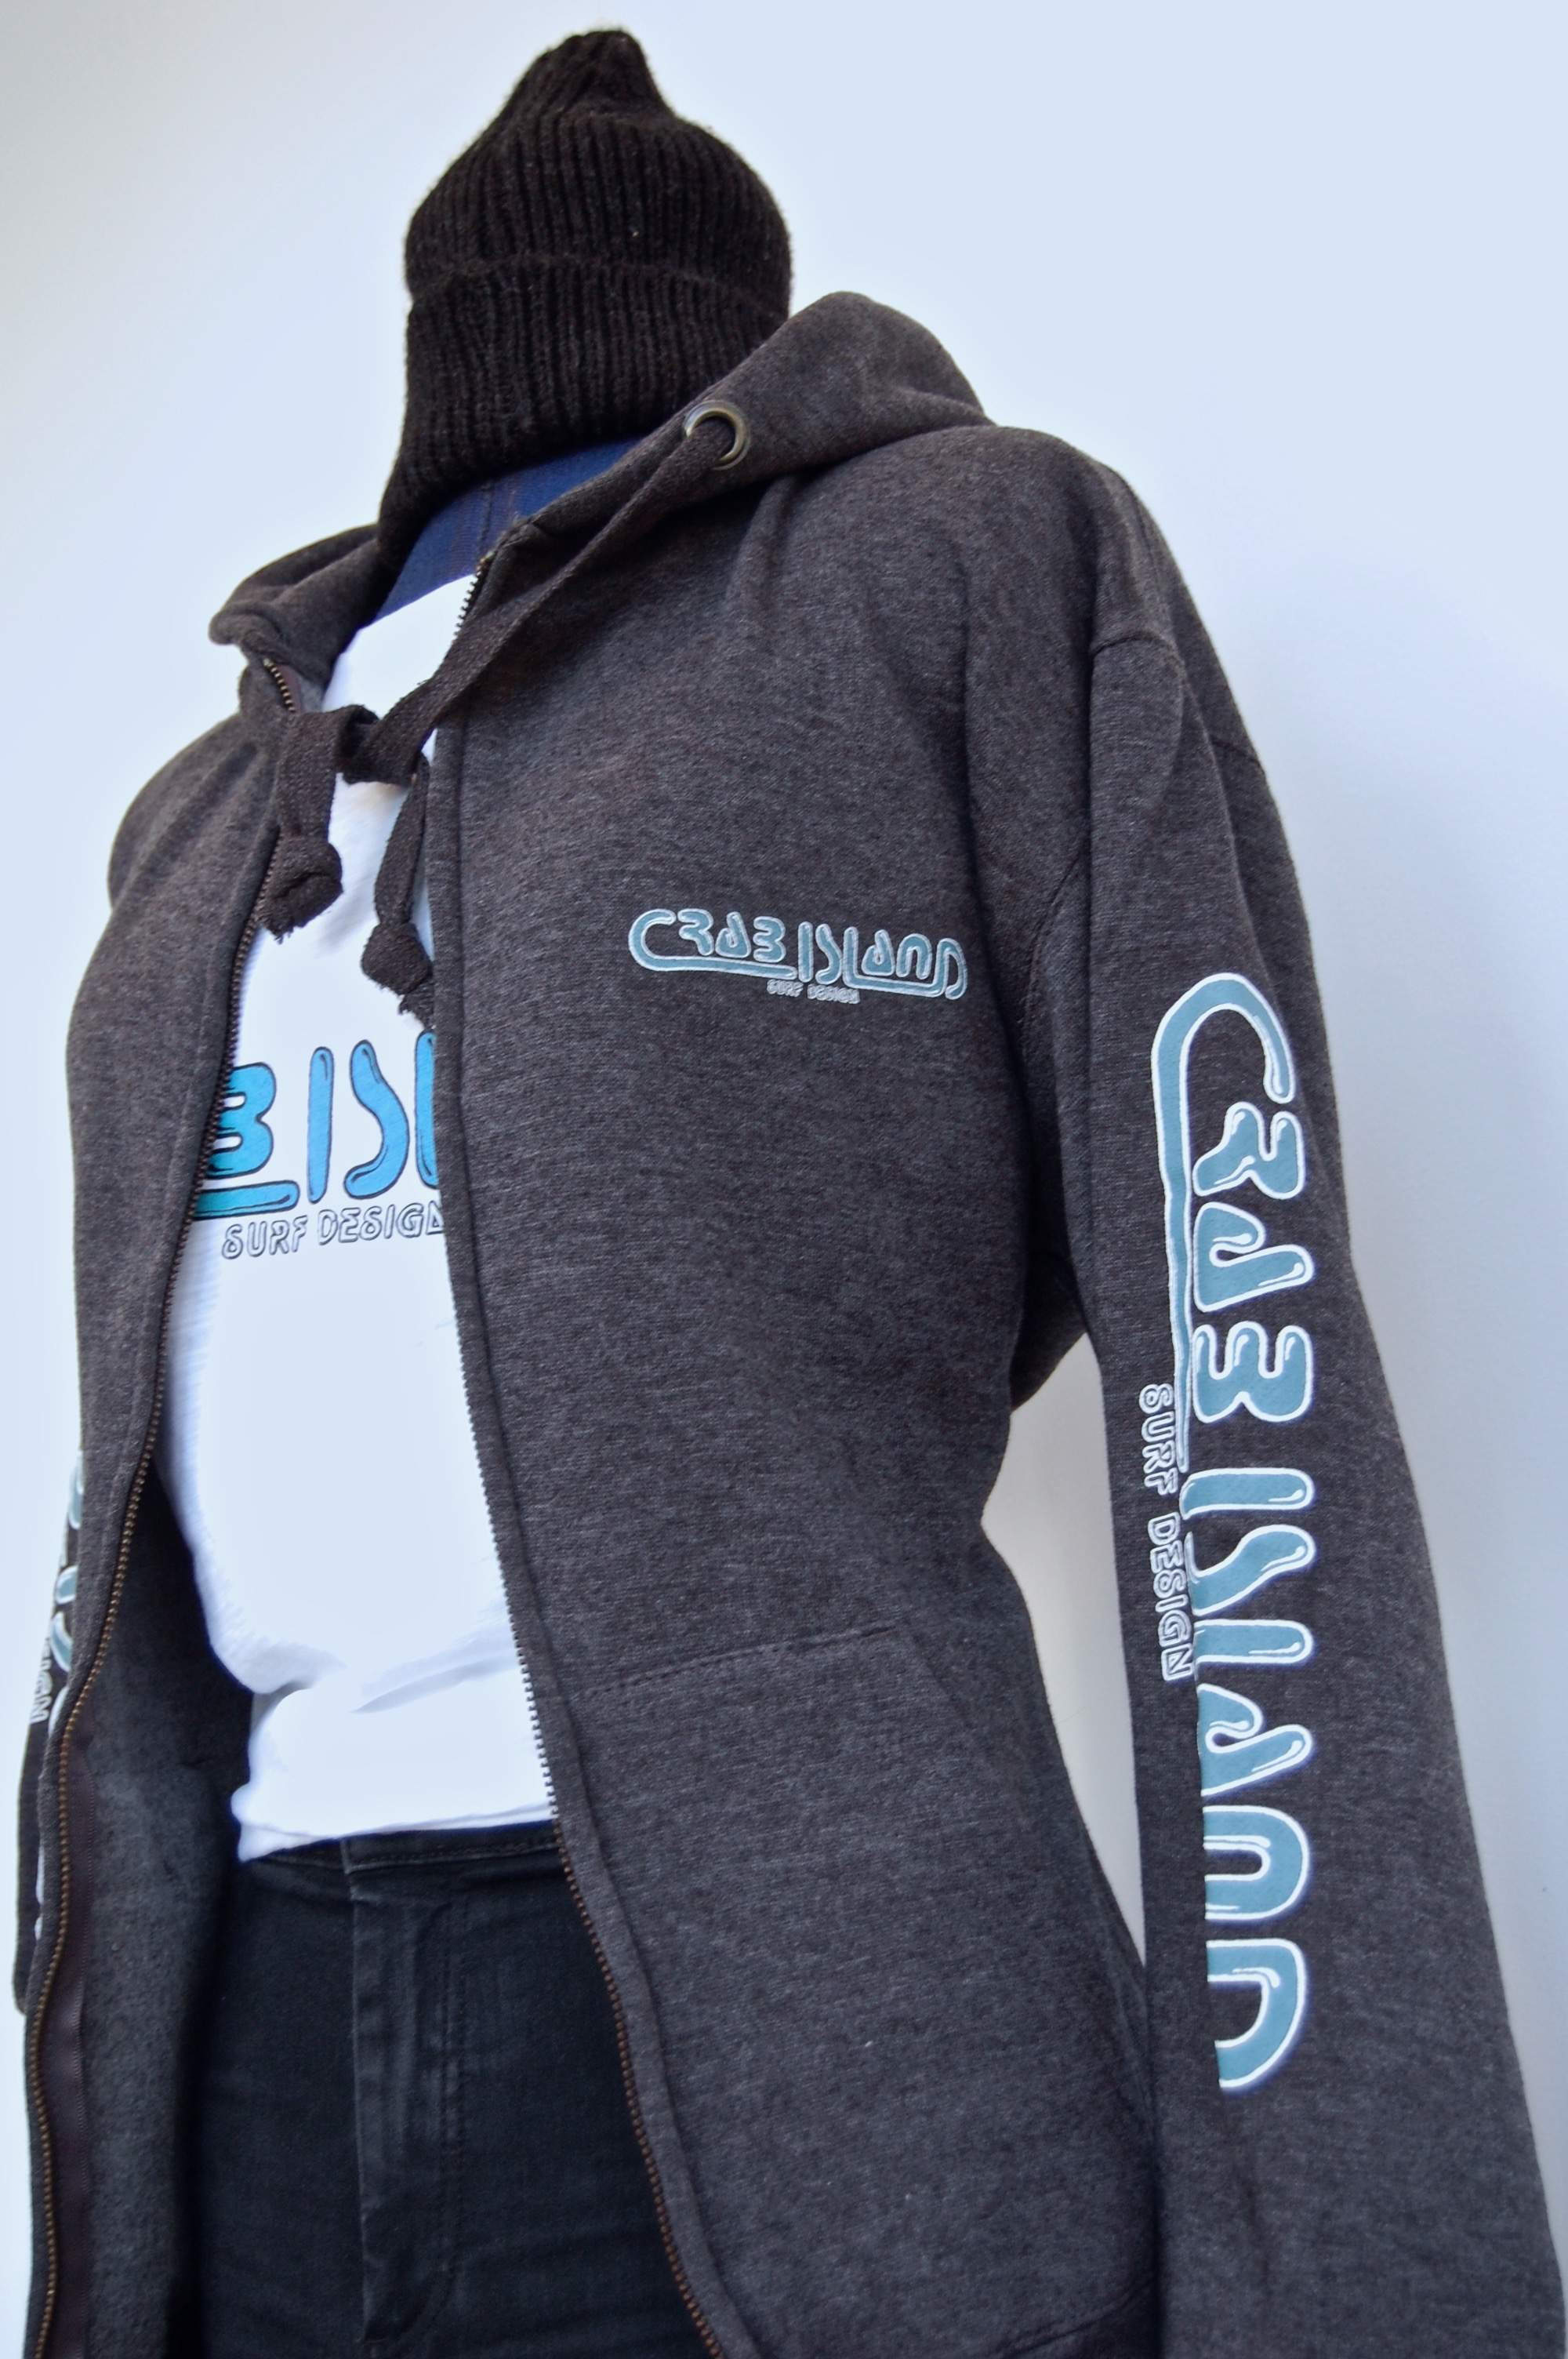 Grey zipped hoodie with Crab Island Surf Design logo